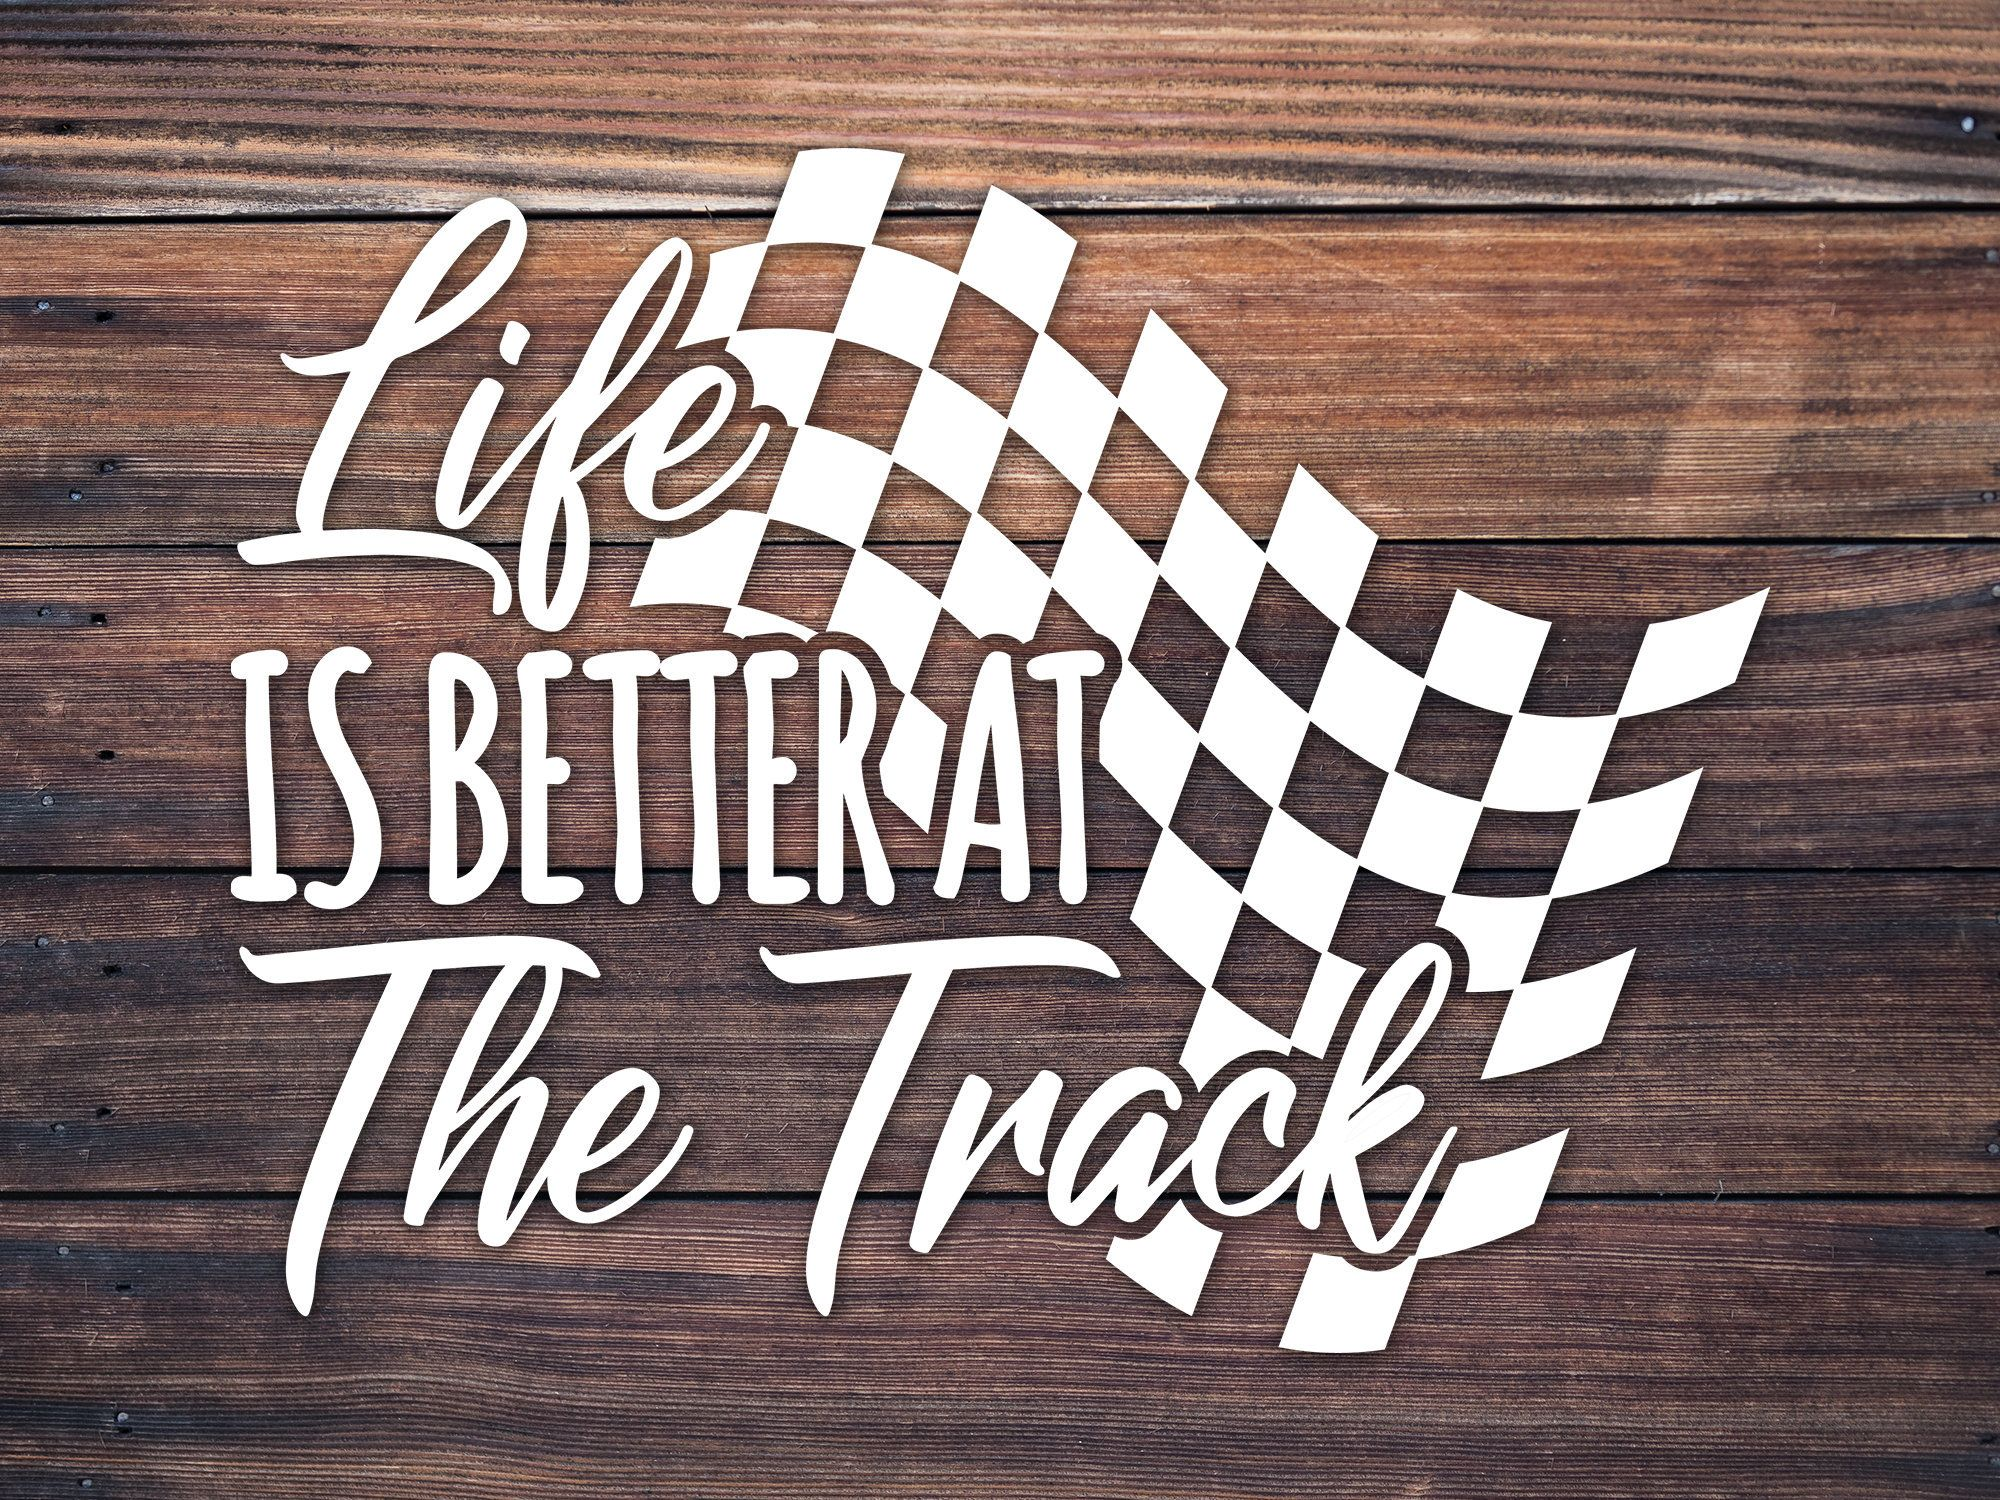 Drag racing decal car cup vinyl decal track life sticker